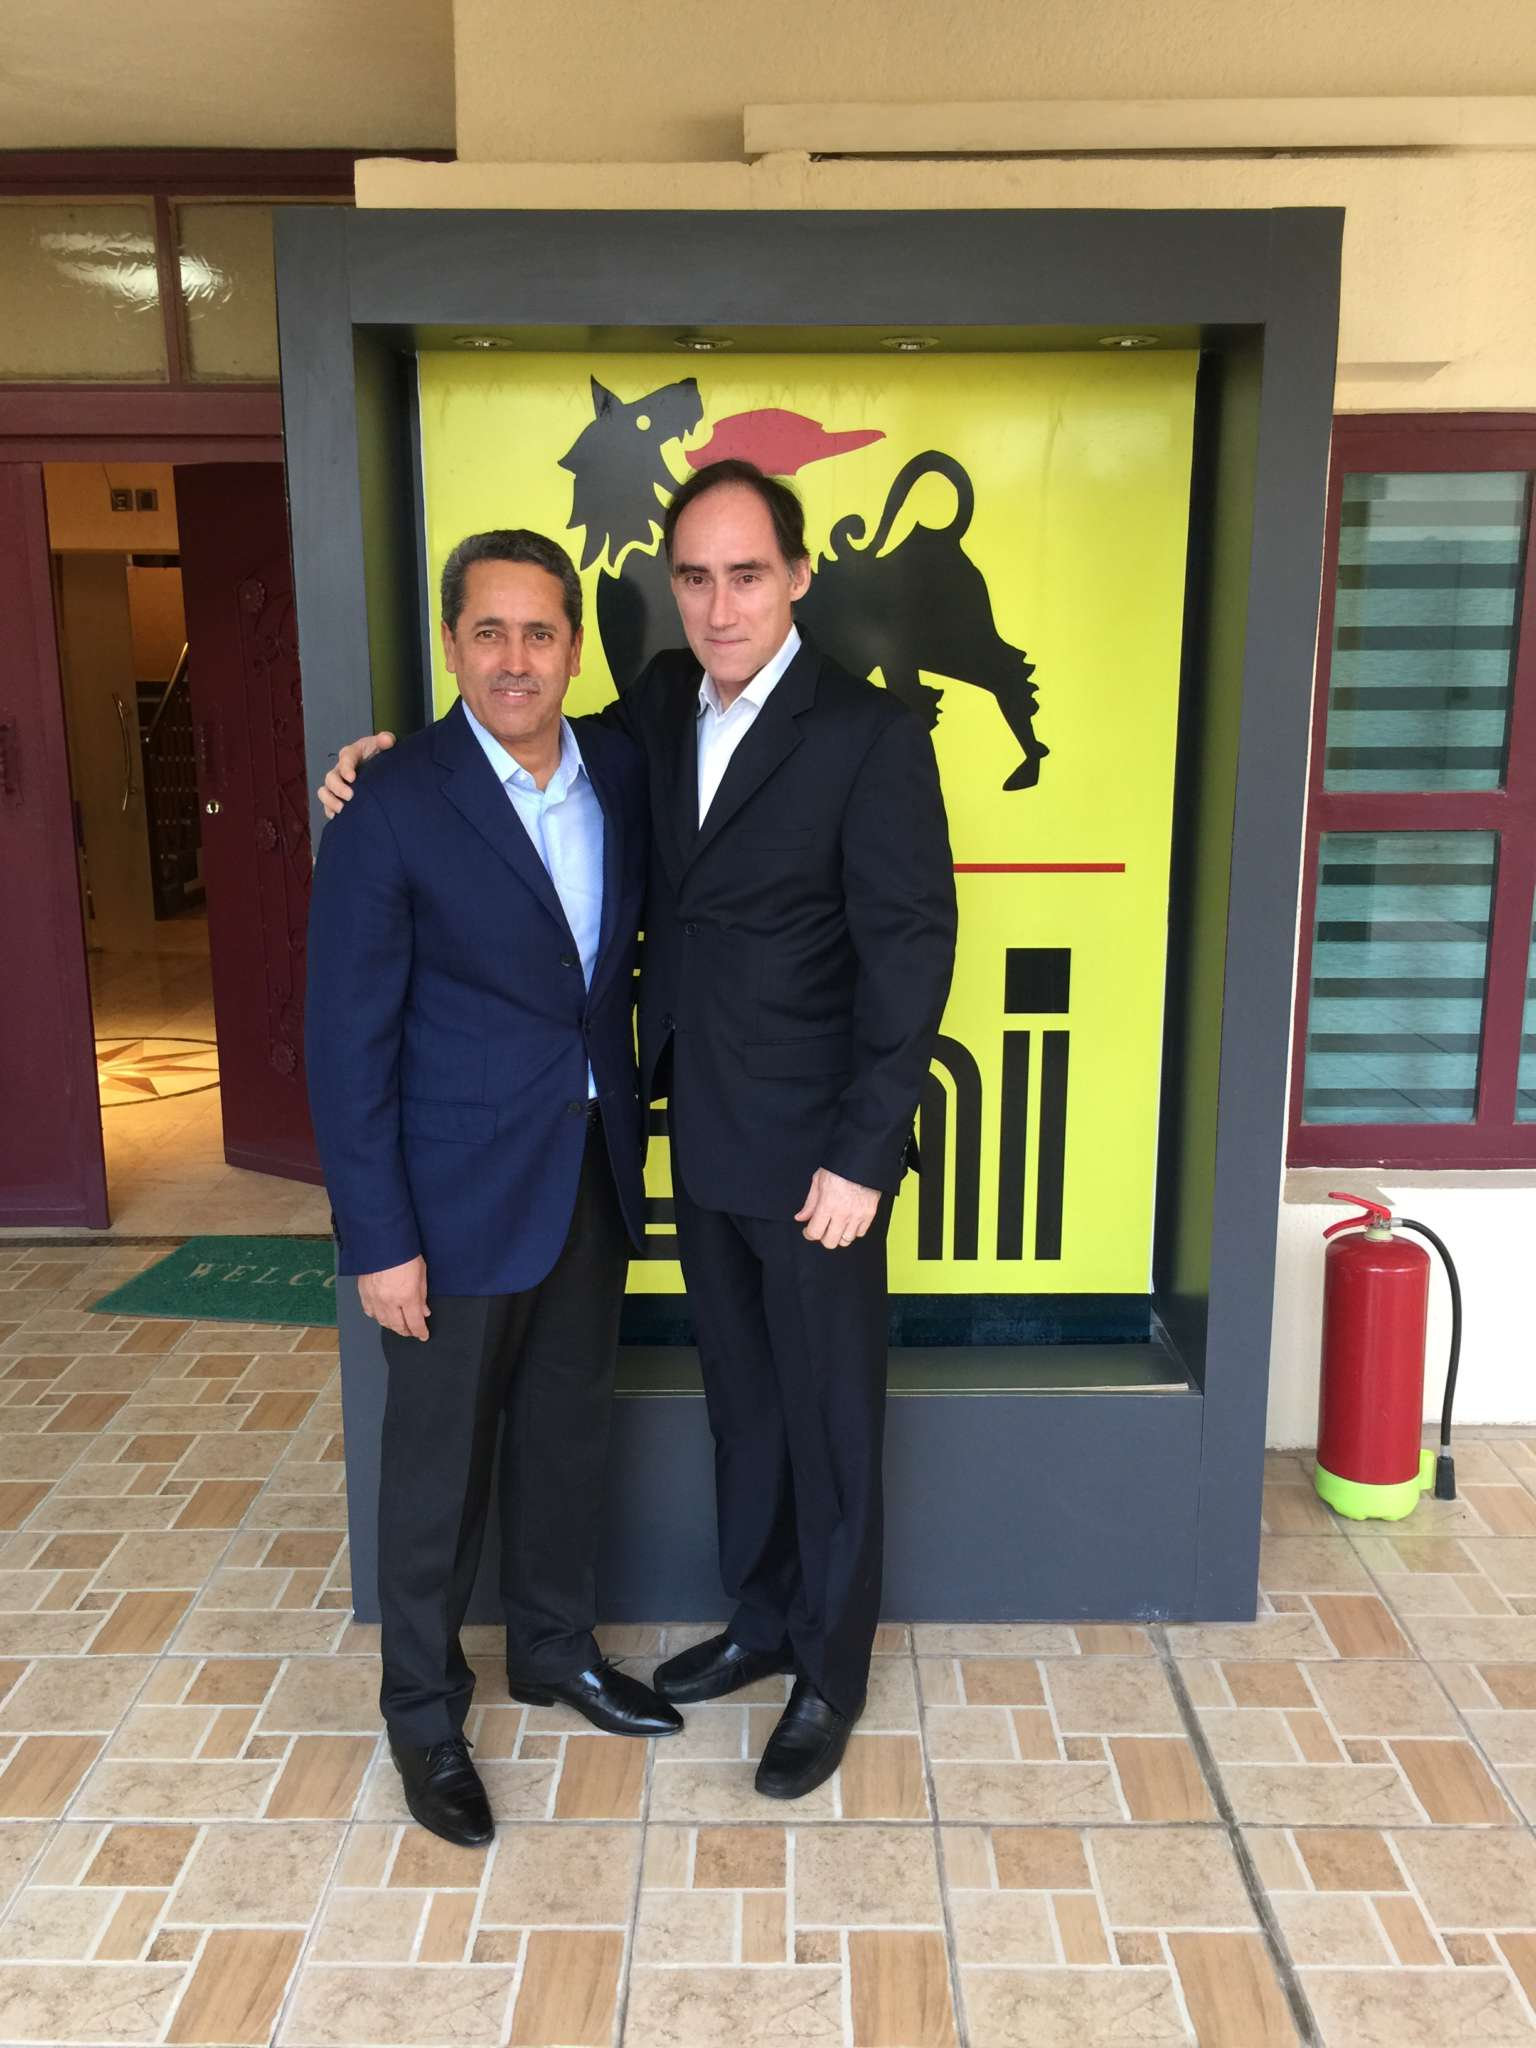 Professor Buford and a colleague wearing suits and standing in front of a yellow and black Eni company sign